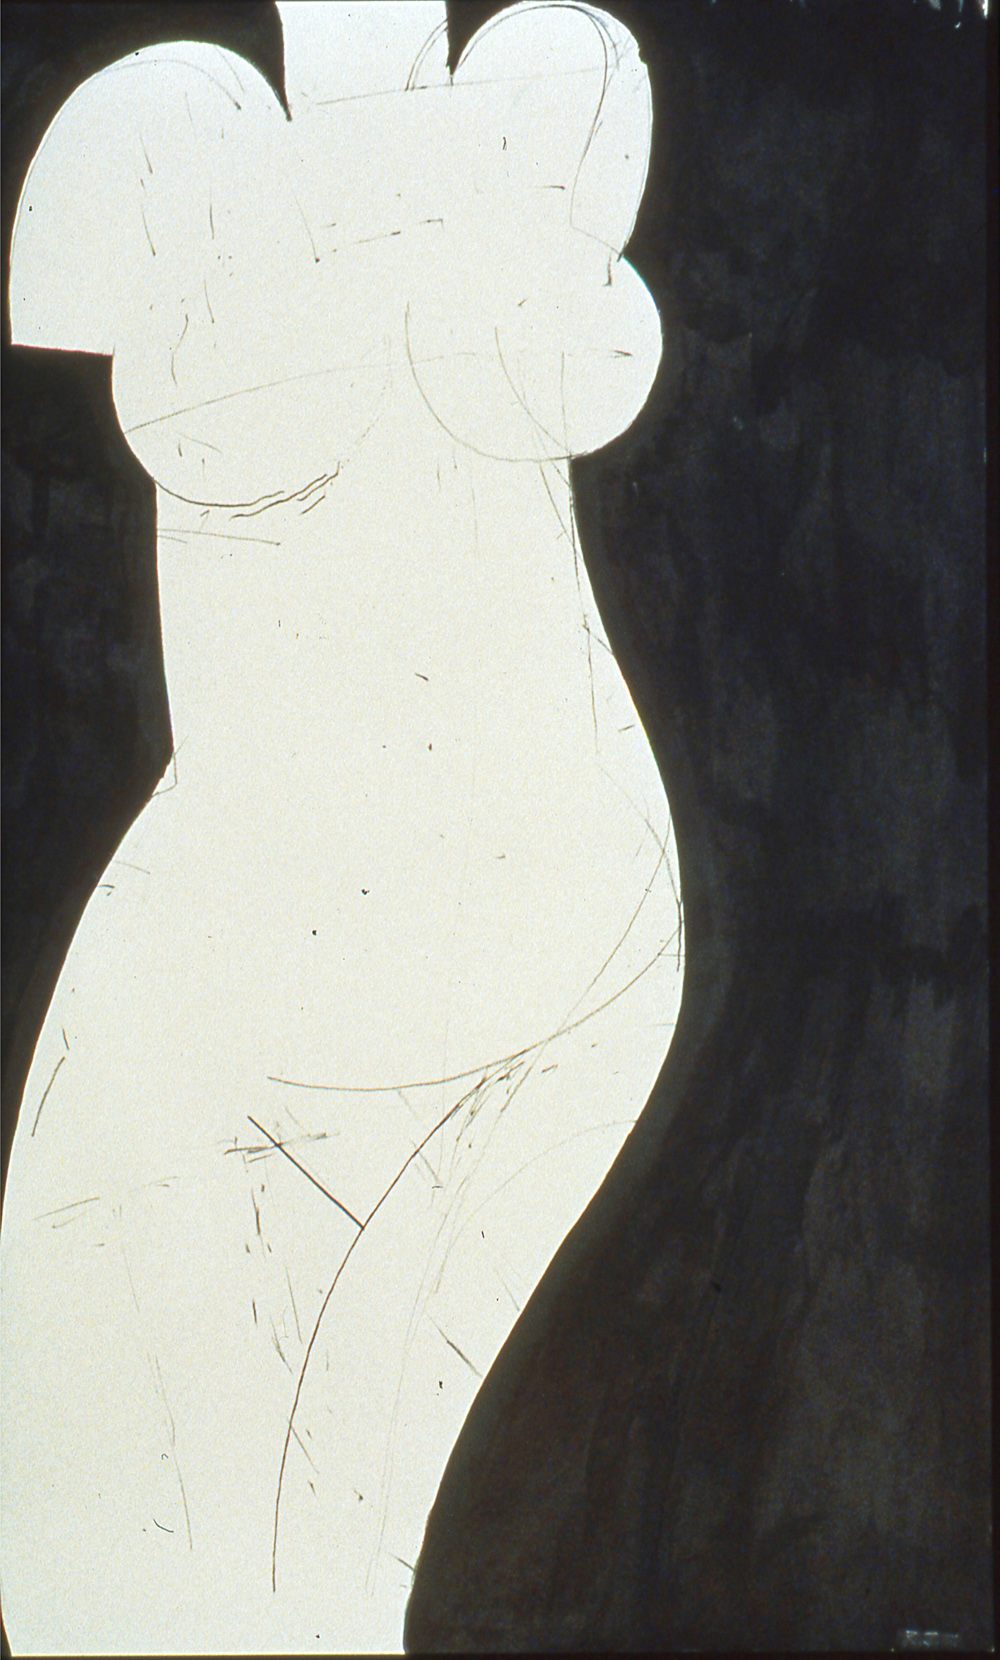 Robert C. Jones, Untitled, 1997, charcoal on paper, 29 x 22 inches, framed, $3000.